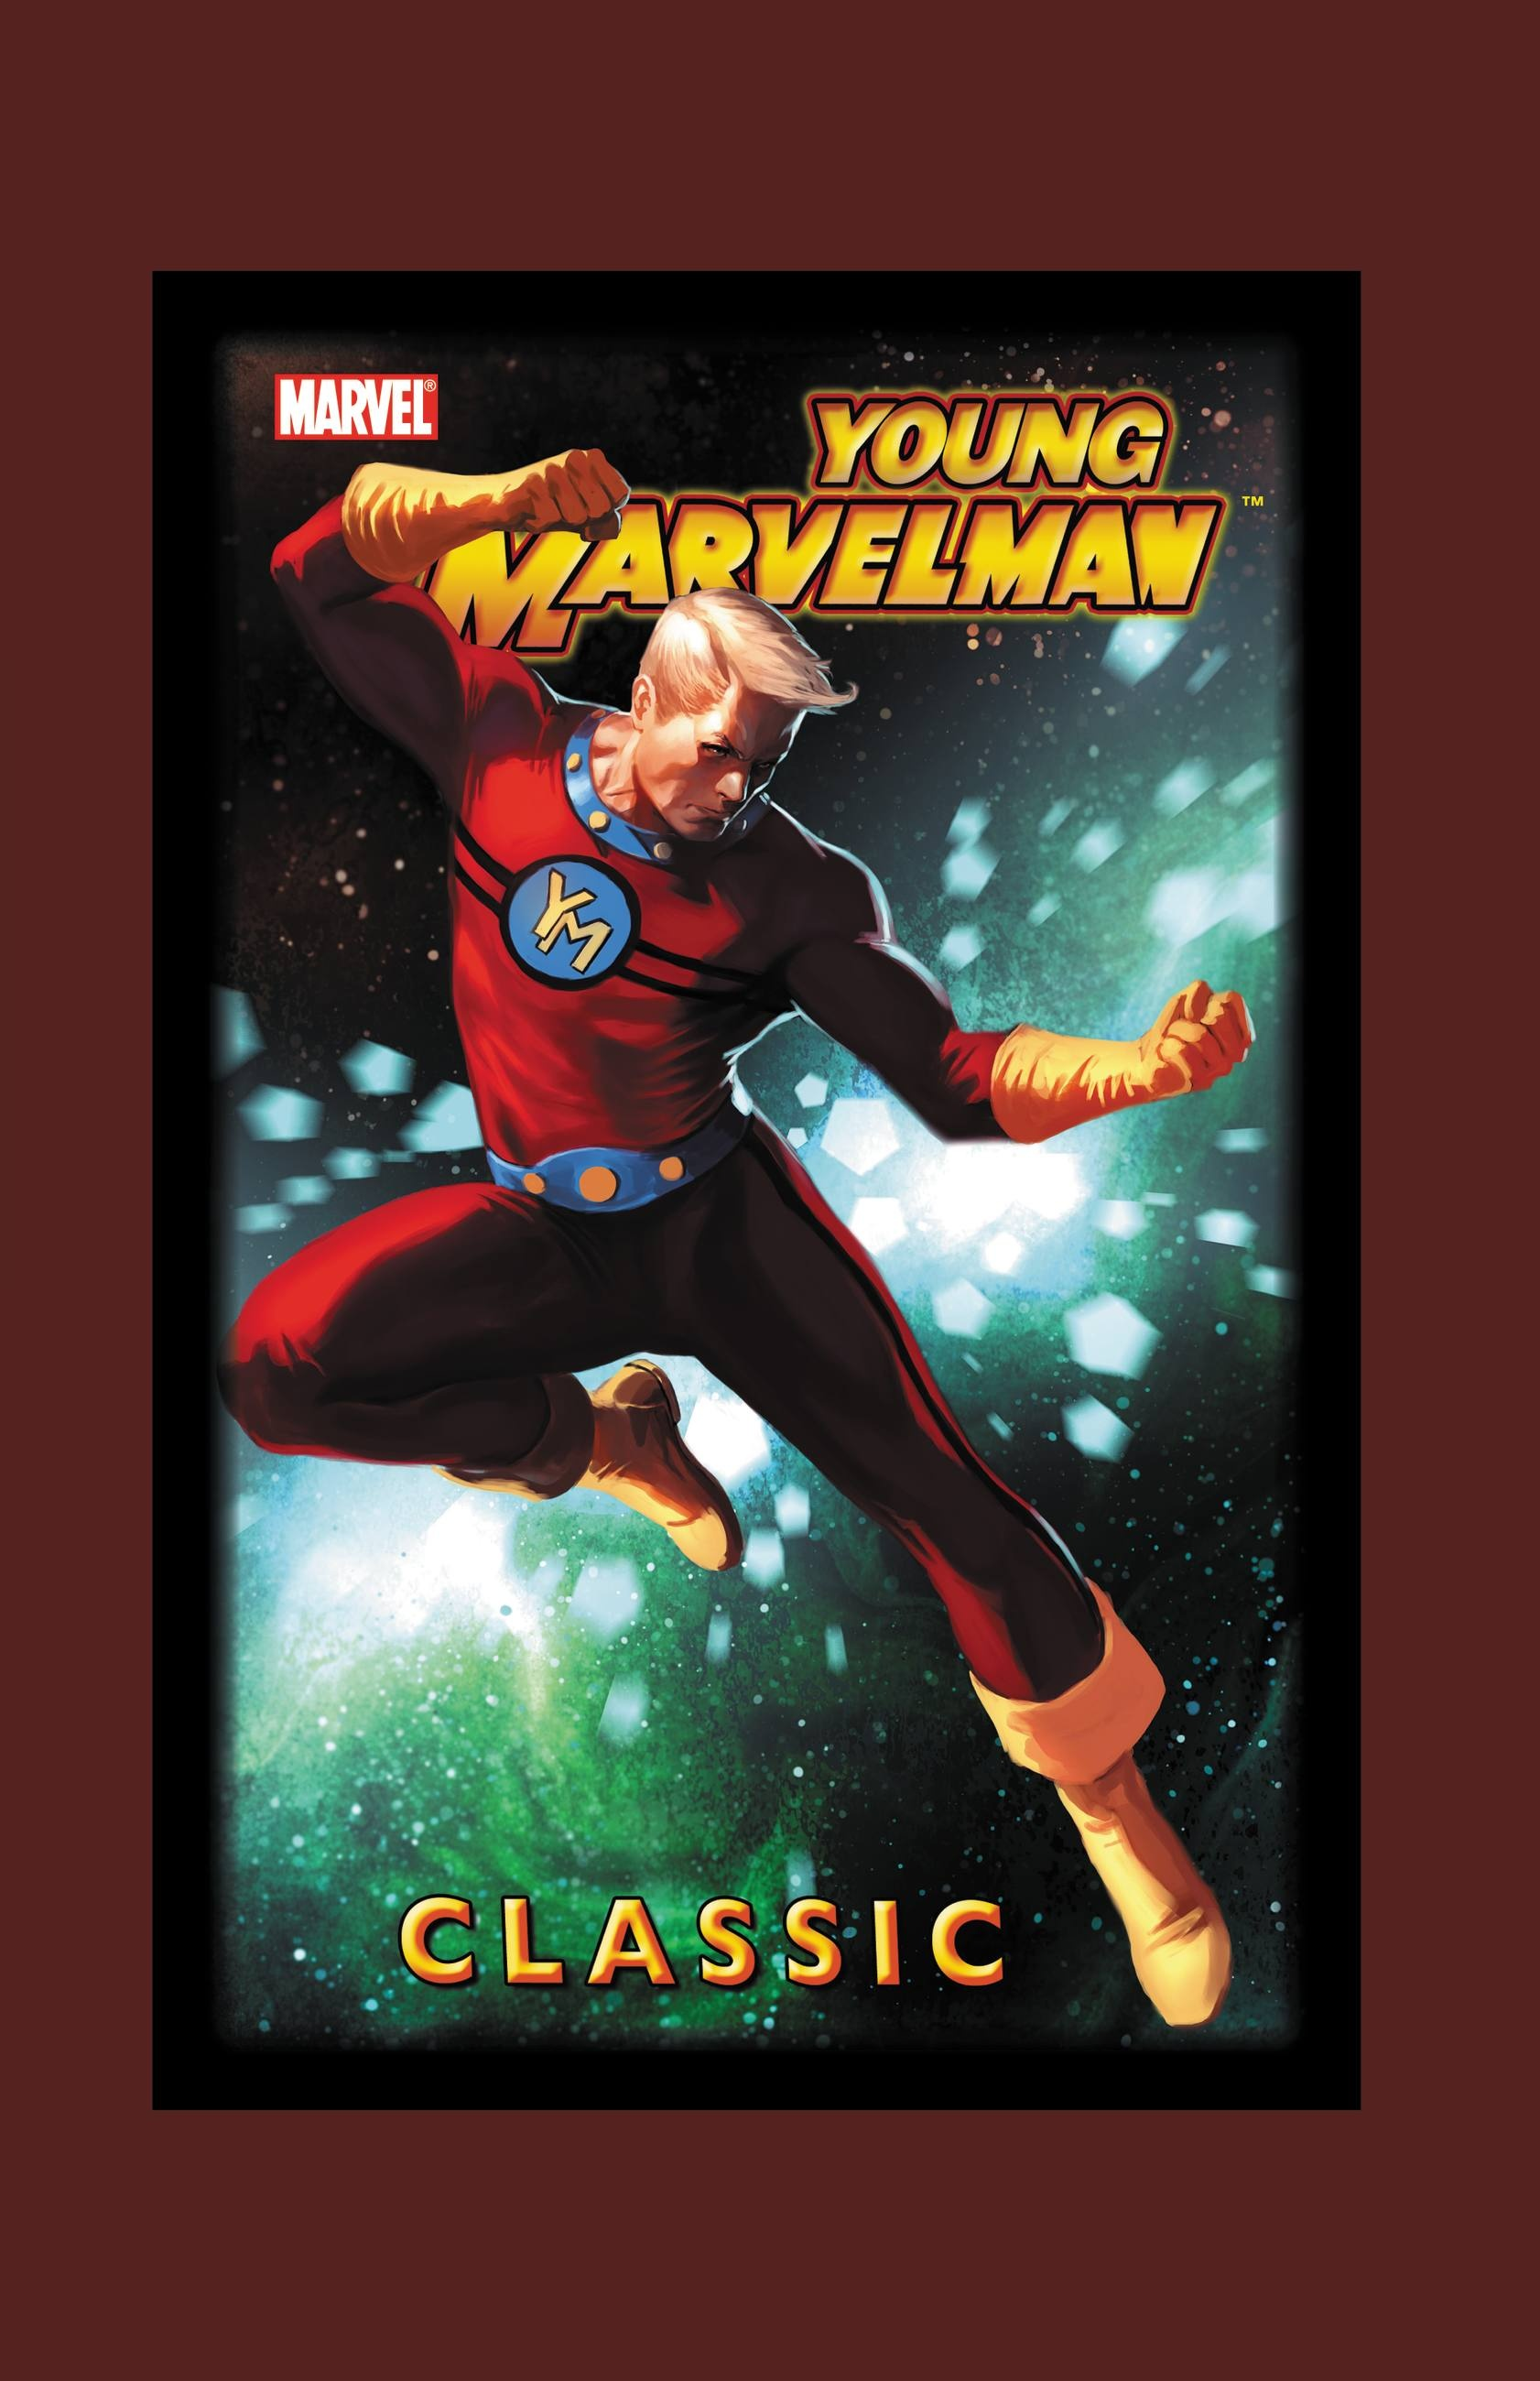 Young Marvelman Classic - Volume 1 the thing classic volume 1